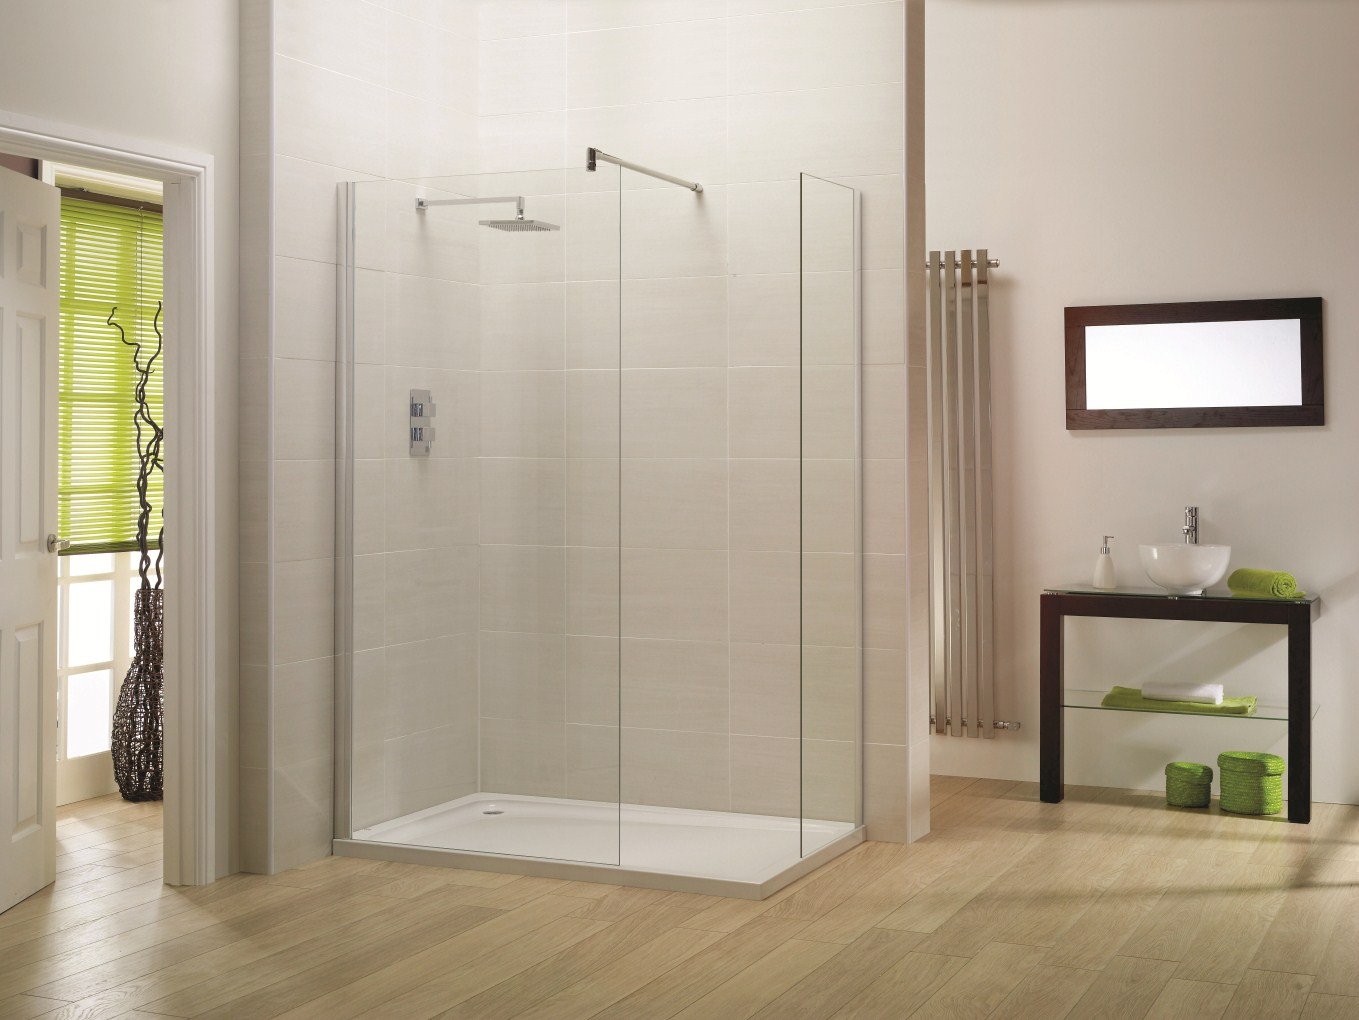 Make Your Bathroom Adorable with Amazing Walk-In Shower Designs ...